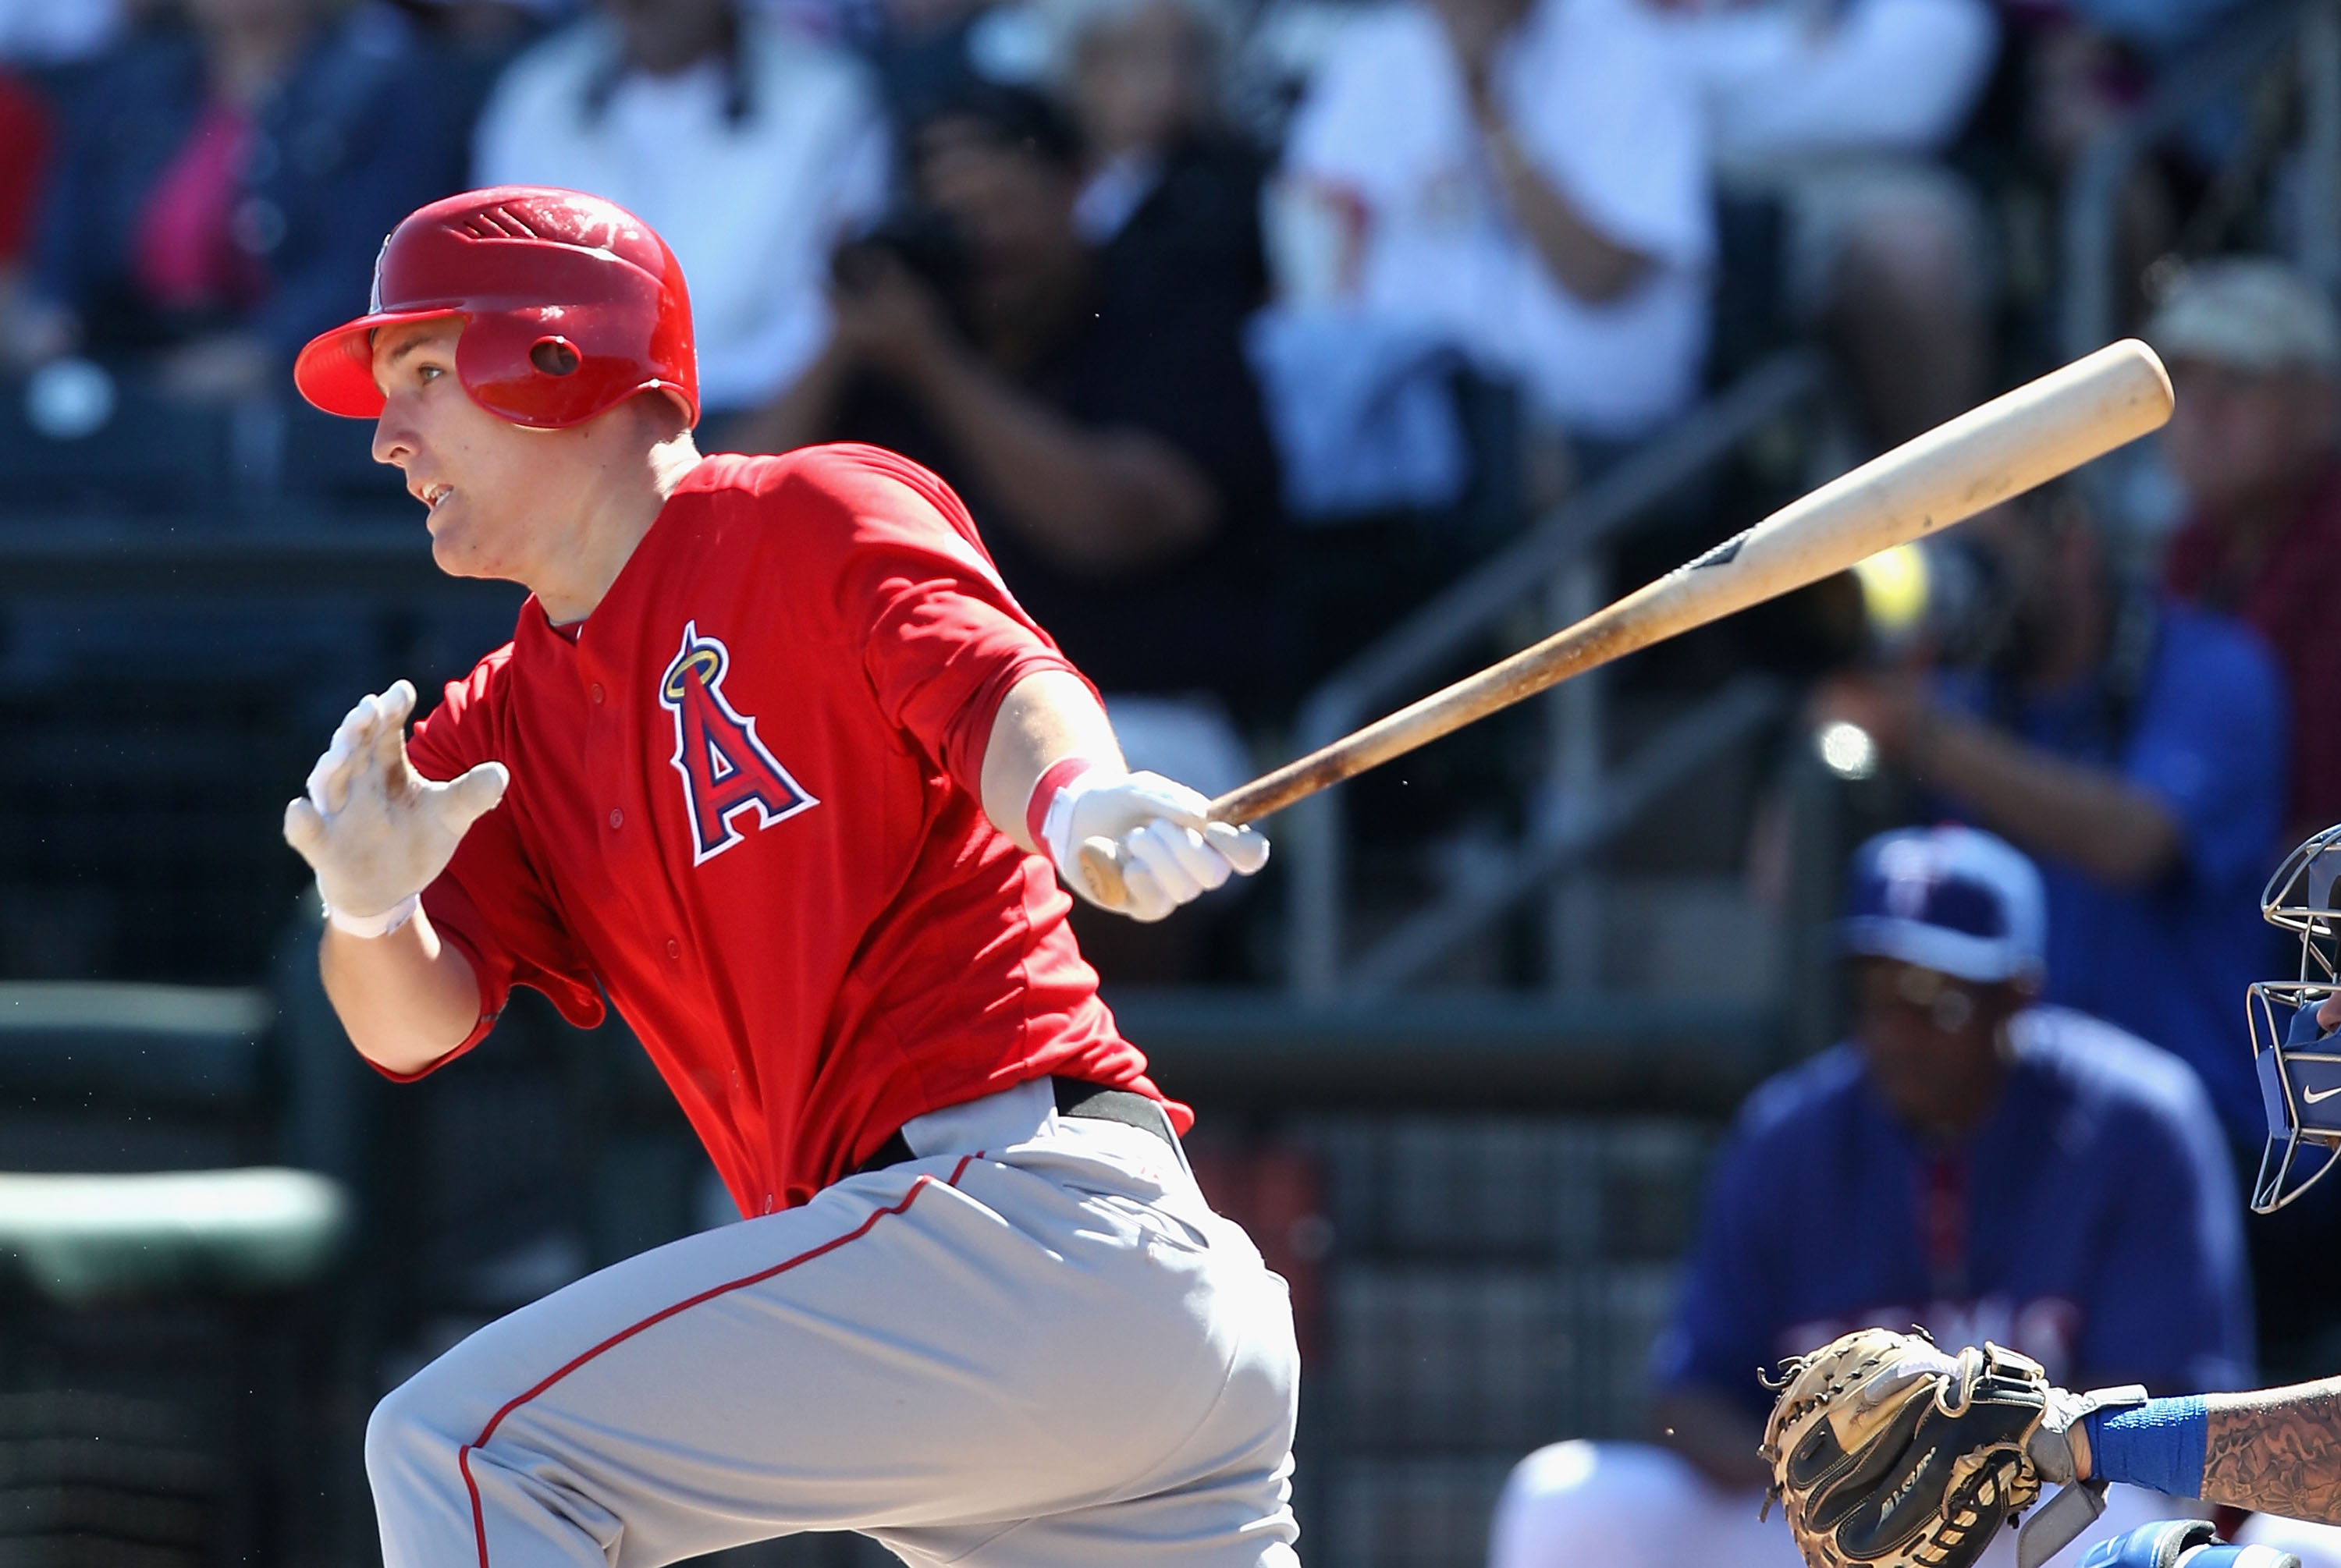 SURPRISE, AZ - MARCH 02:  Mike Trout #90 of the Los Angeles Angels of Anaheim hits a single against the Texas Rangers during the second inning of the spring training game at Surprise Stadium on March 2, 2011 in Surprise, Arizona.  (Photo by Christian Pete